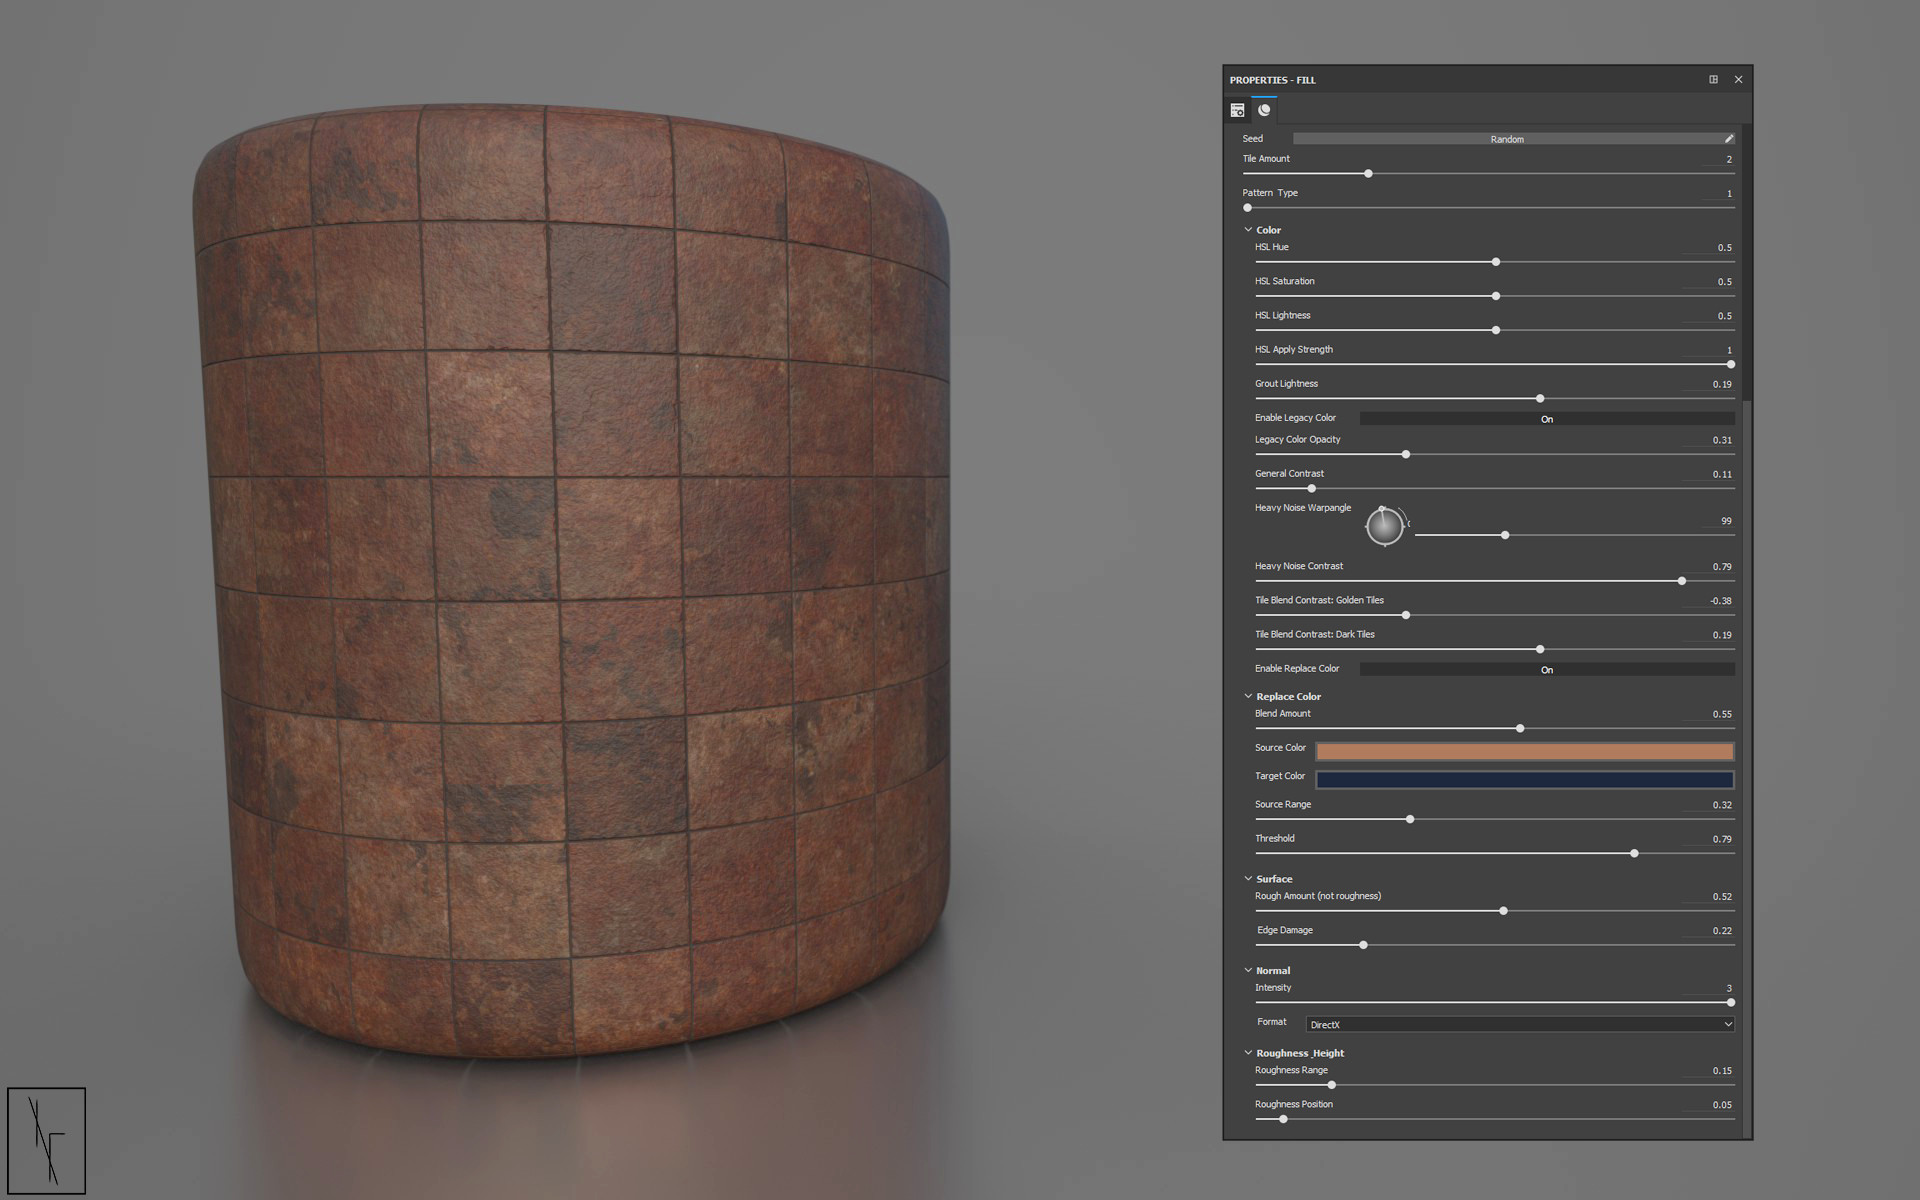 Niels fechtel bronze bathroom tiles rendercylinder v3